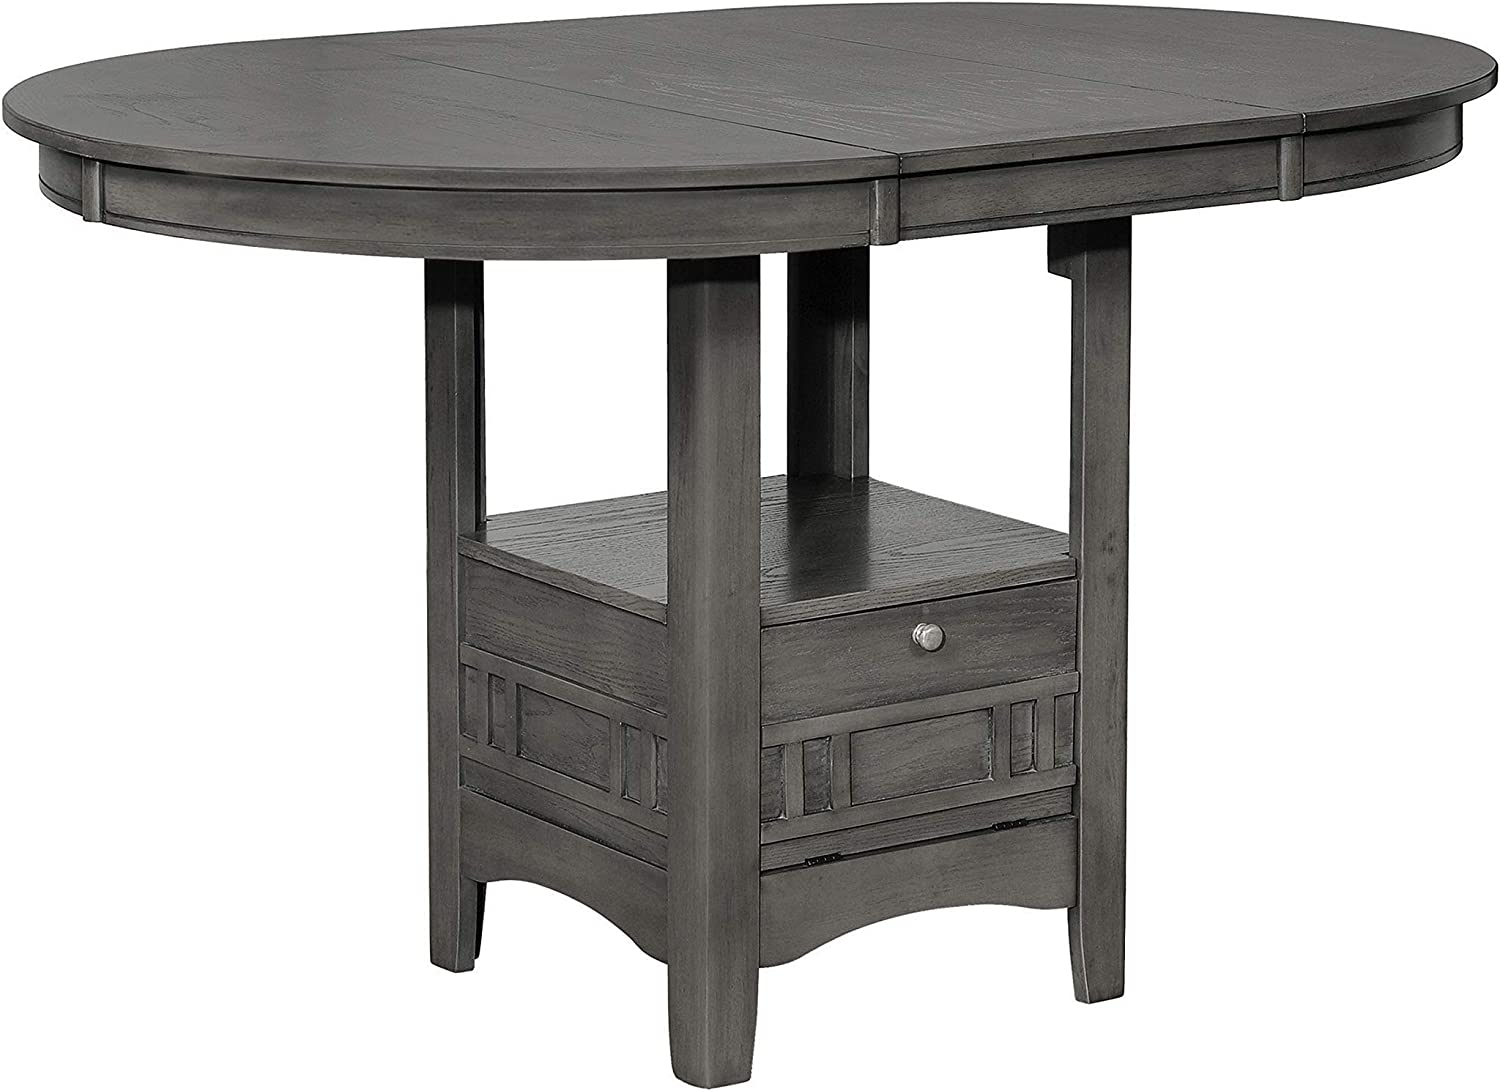 Coaster Home Furnishings LAVON Oval Medium Grey Counter Height Table